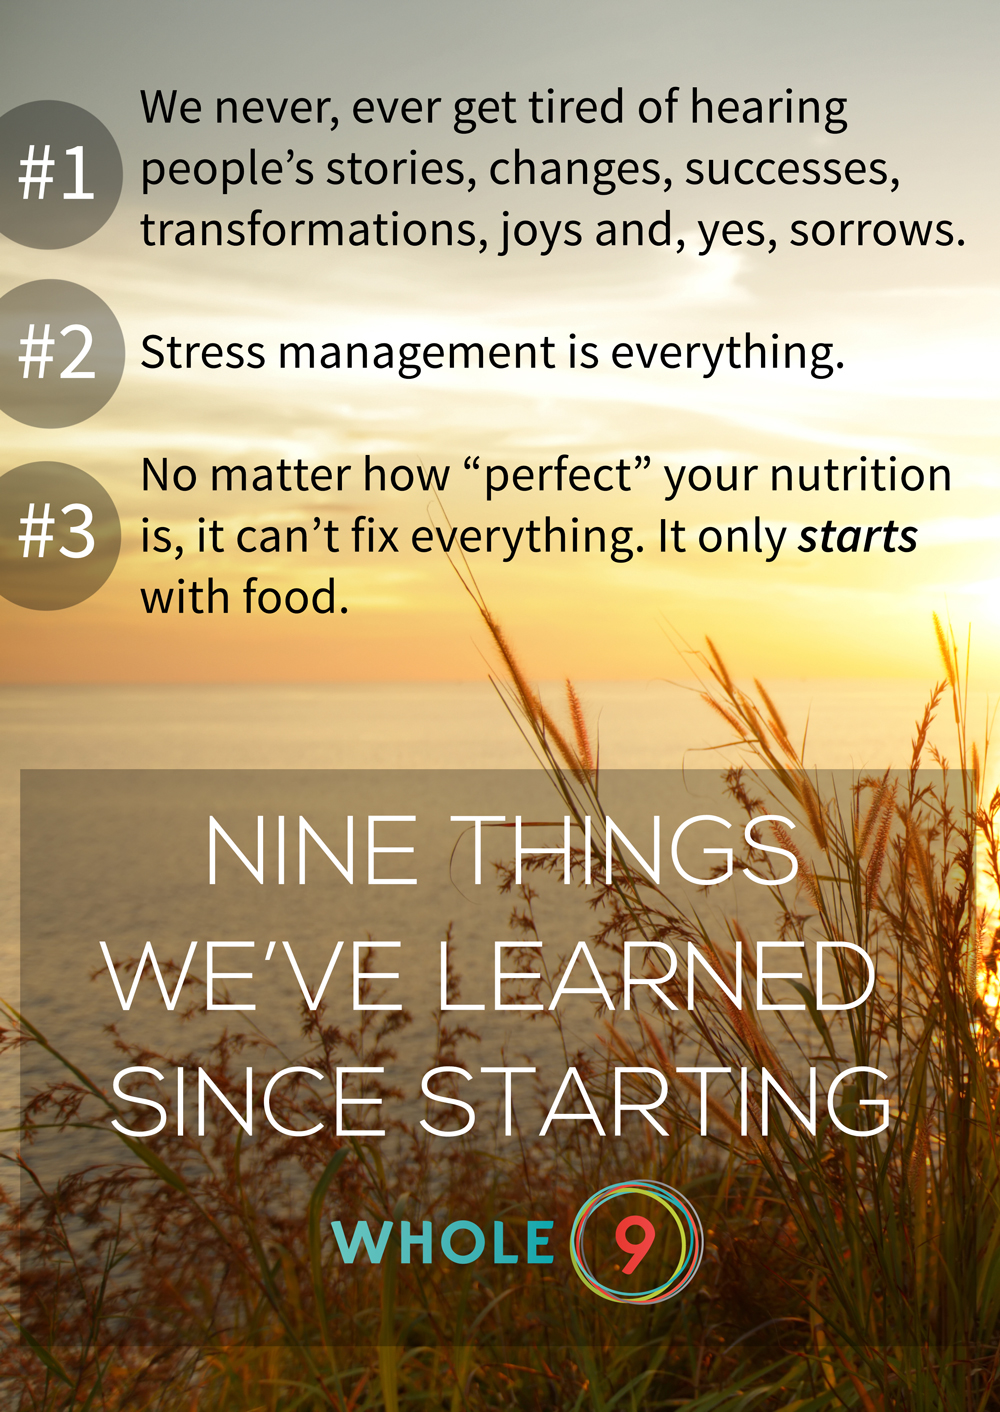 9 Things We've Learned Since Starting Whole9 - Whole9life.com